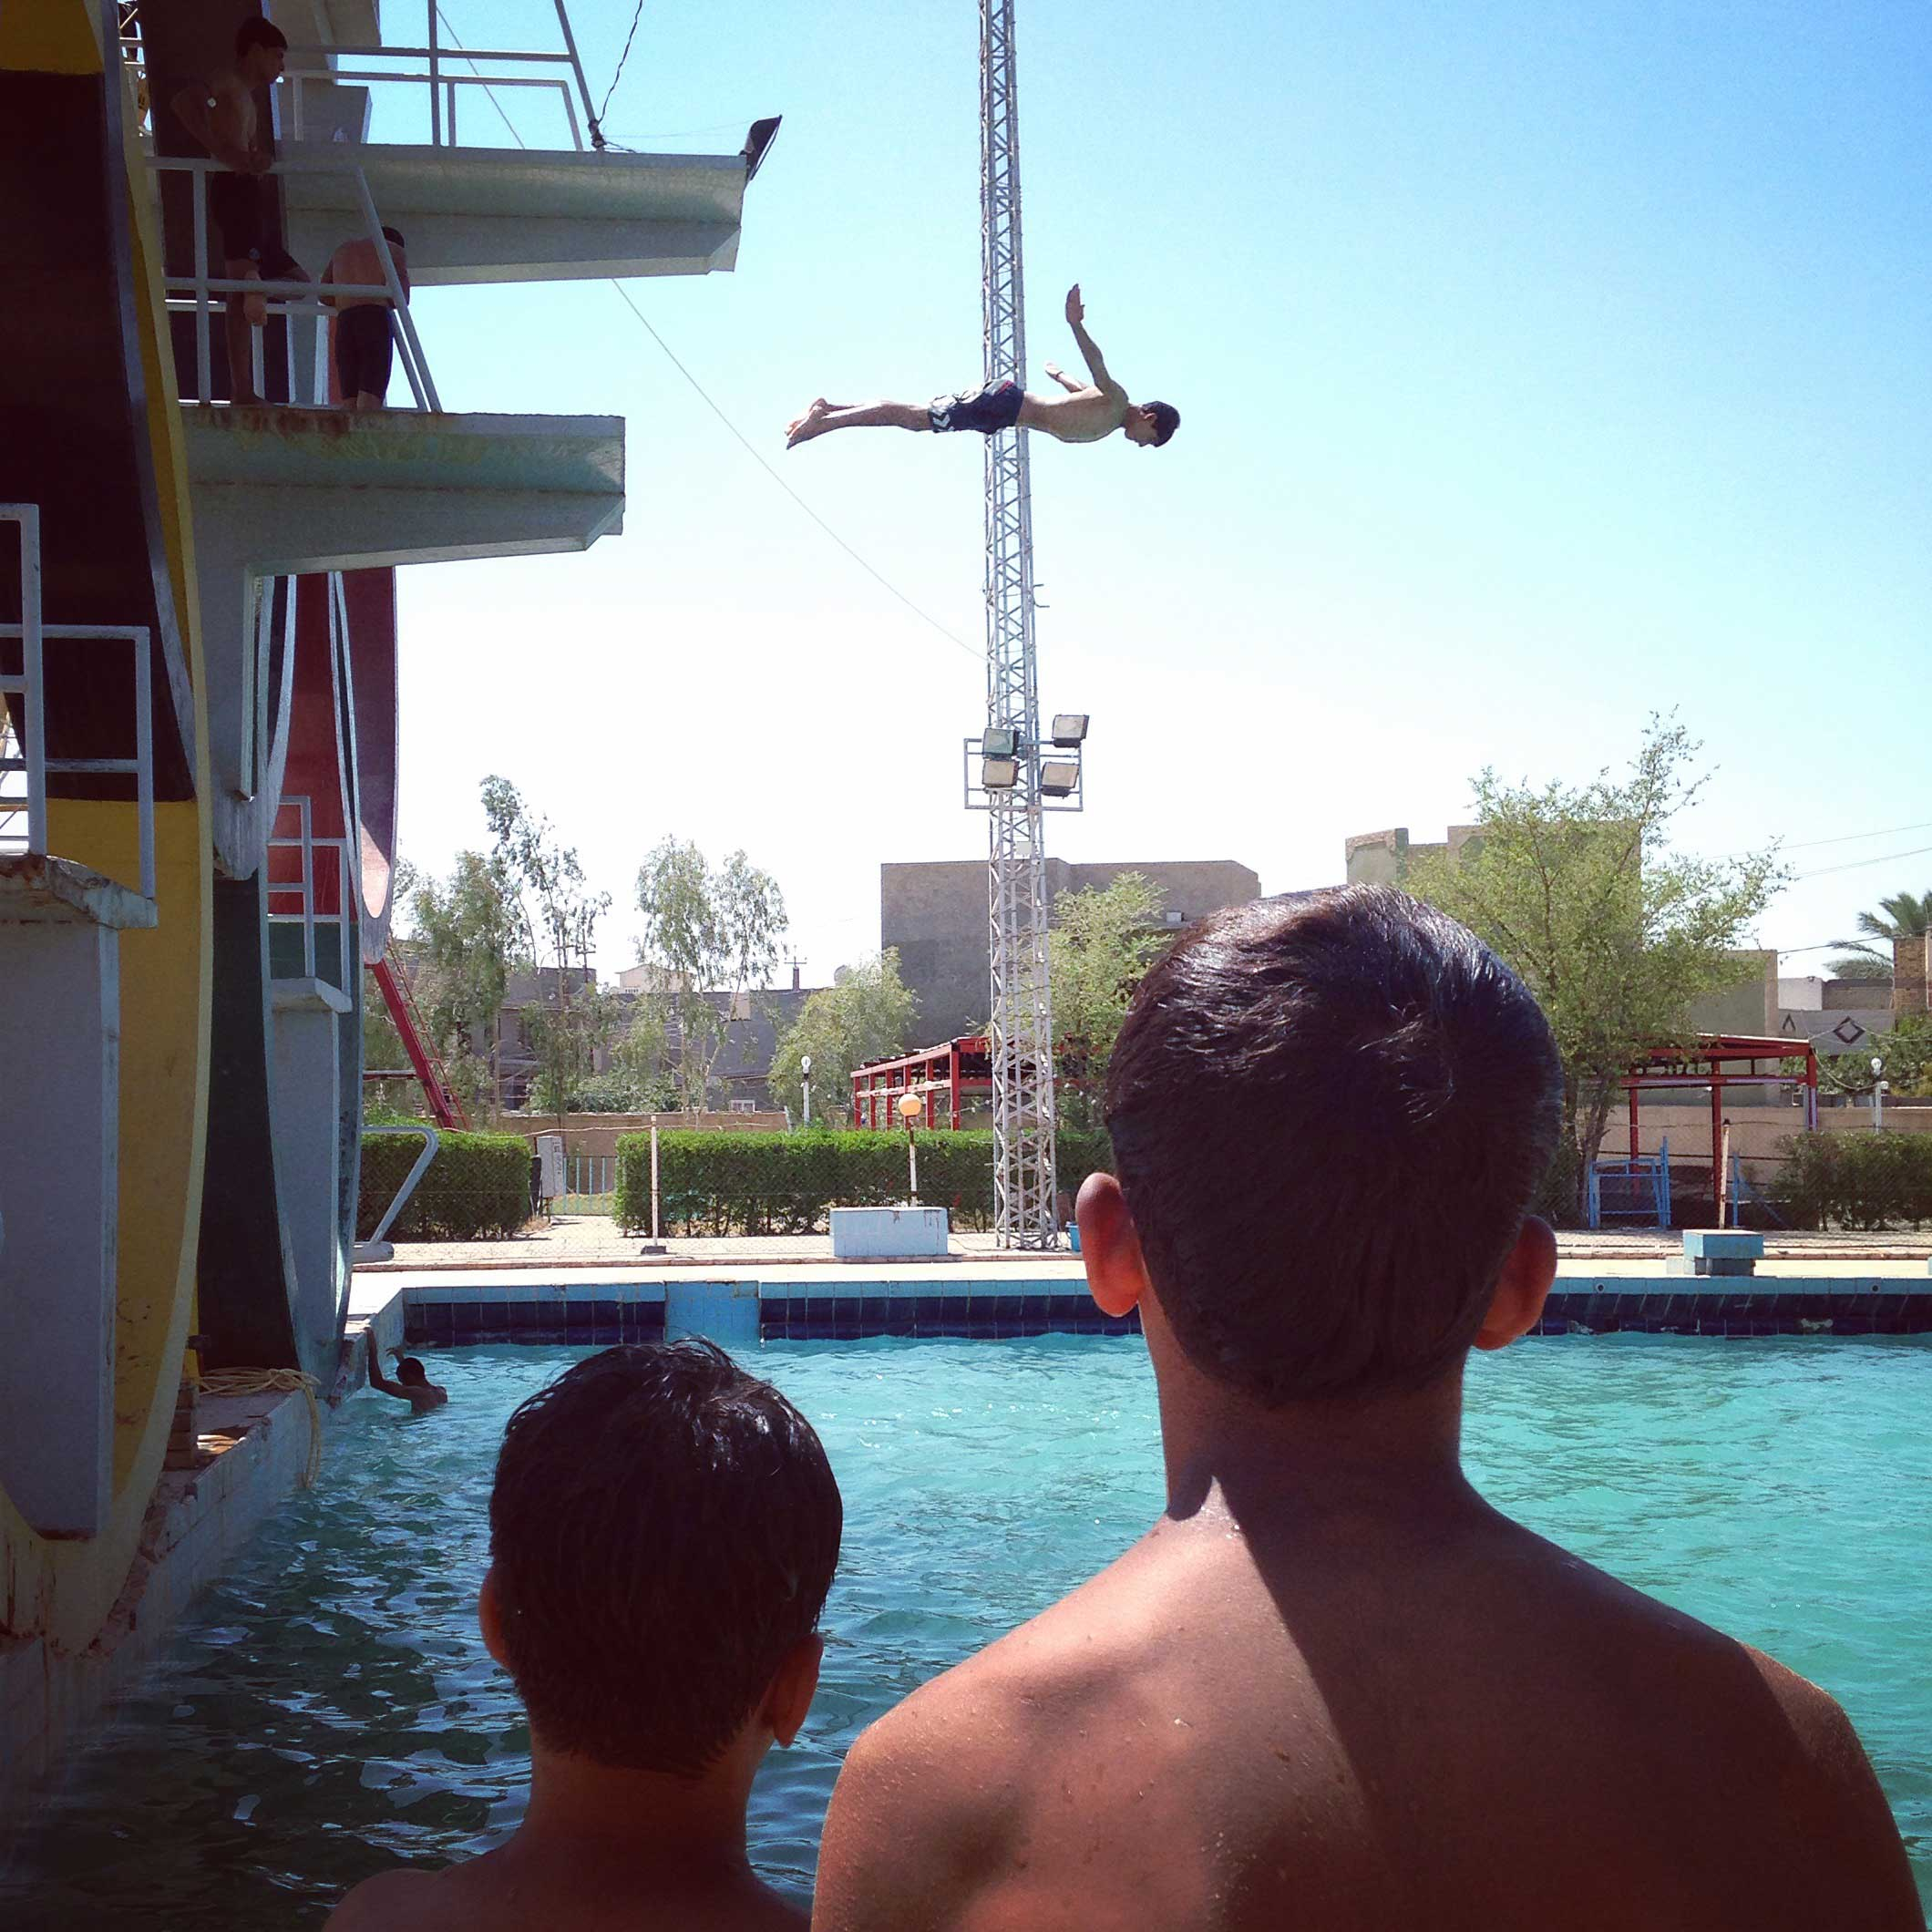 Iraqi young man jumps into a public swimming pool during a hot day in the city of Hilla, Babil, Iraq.